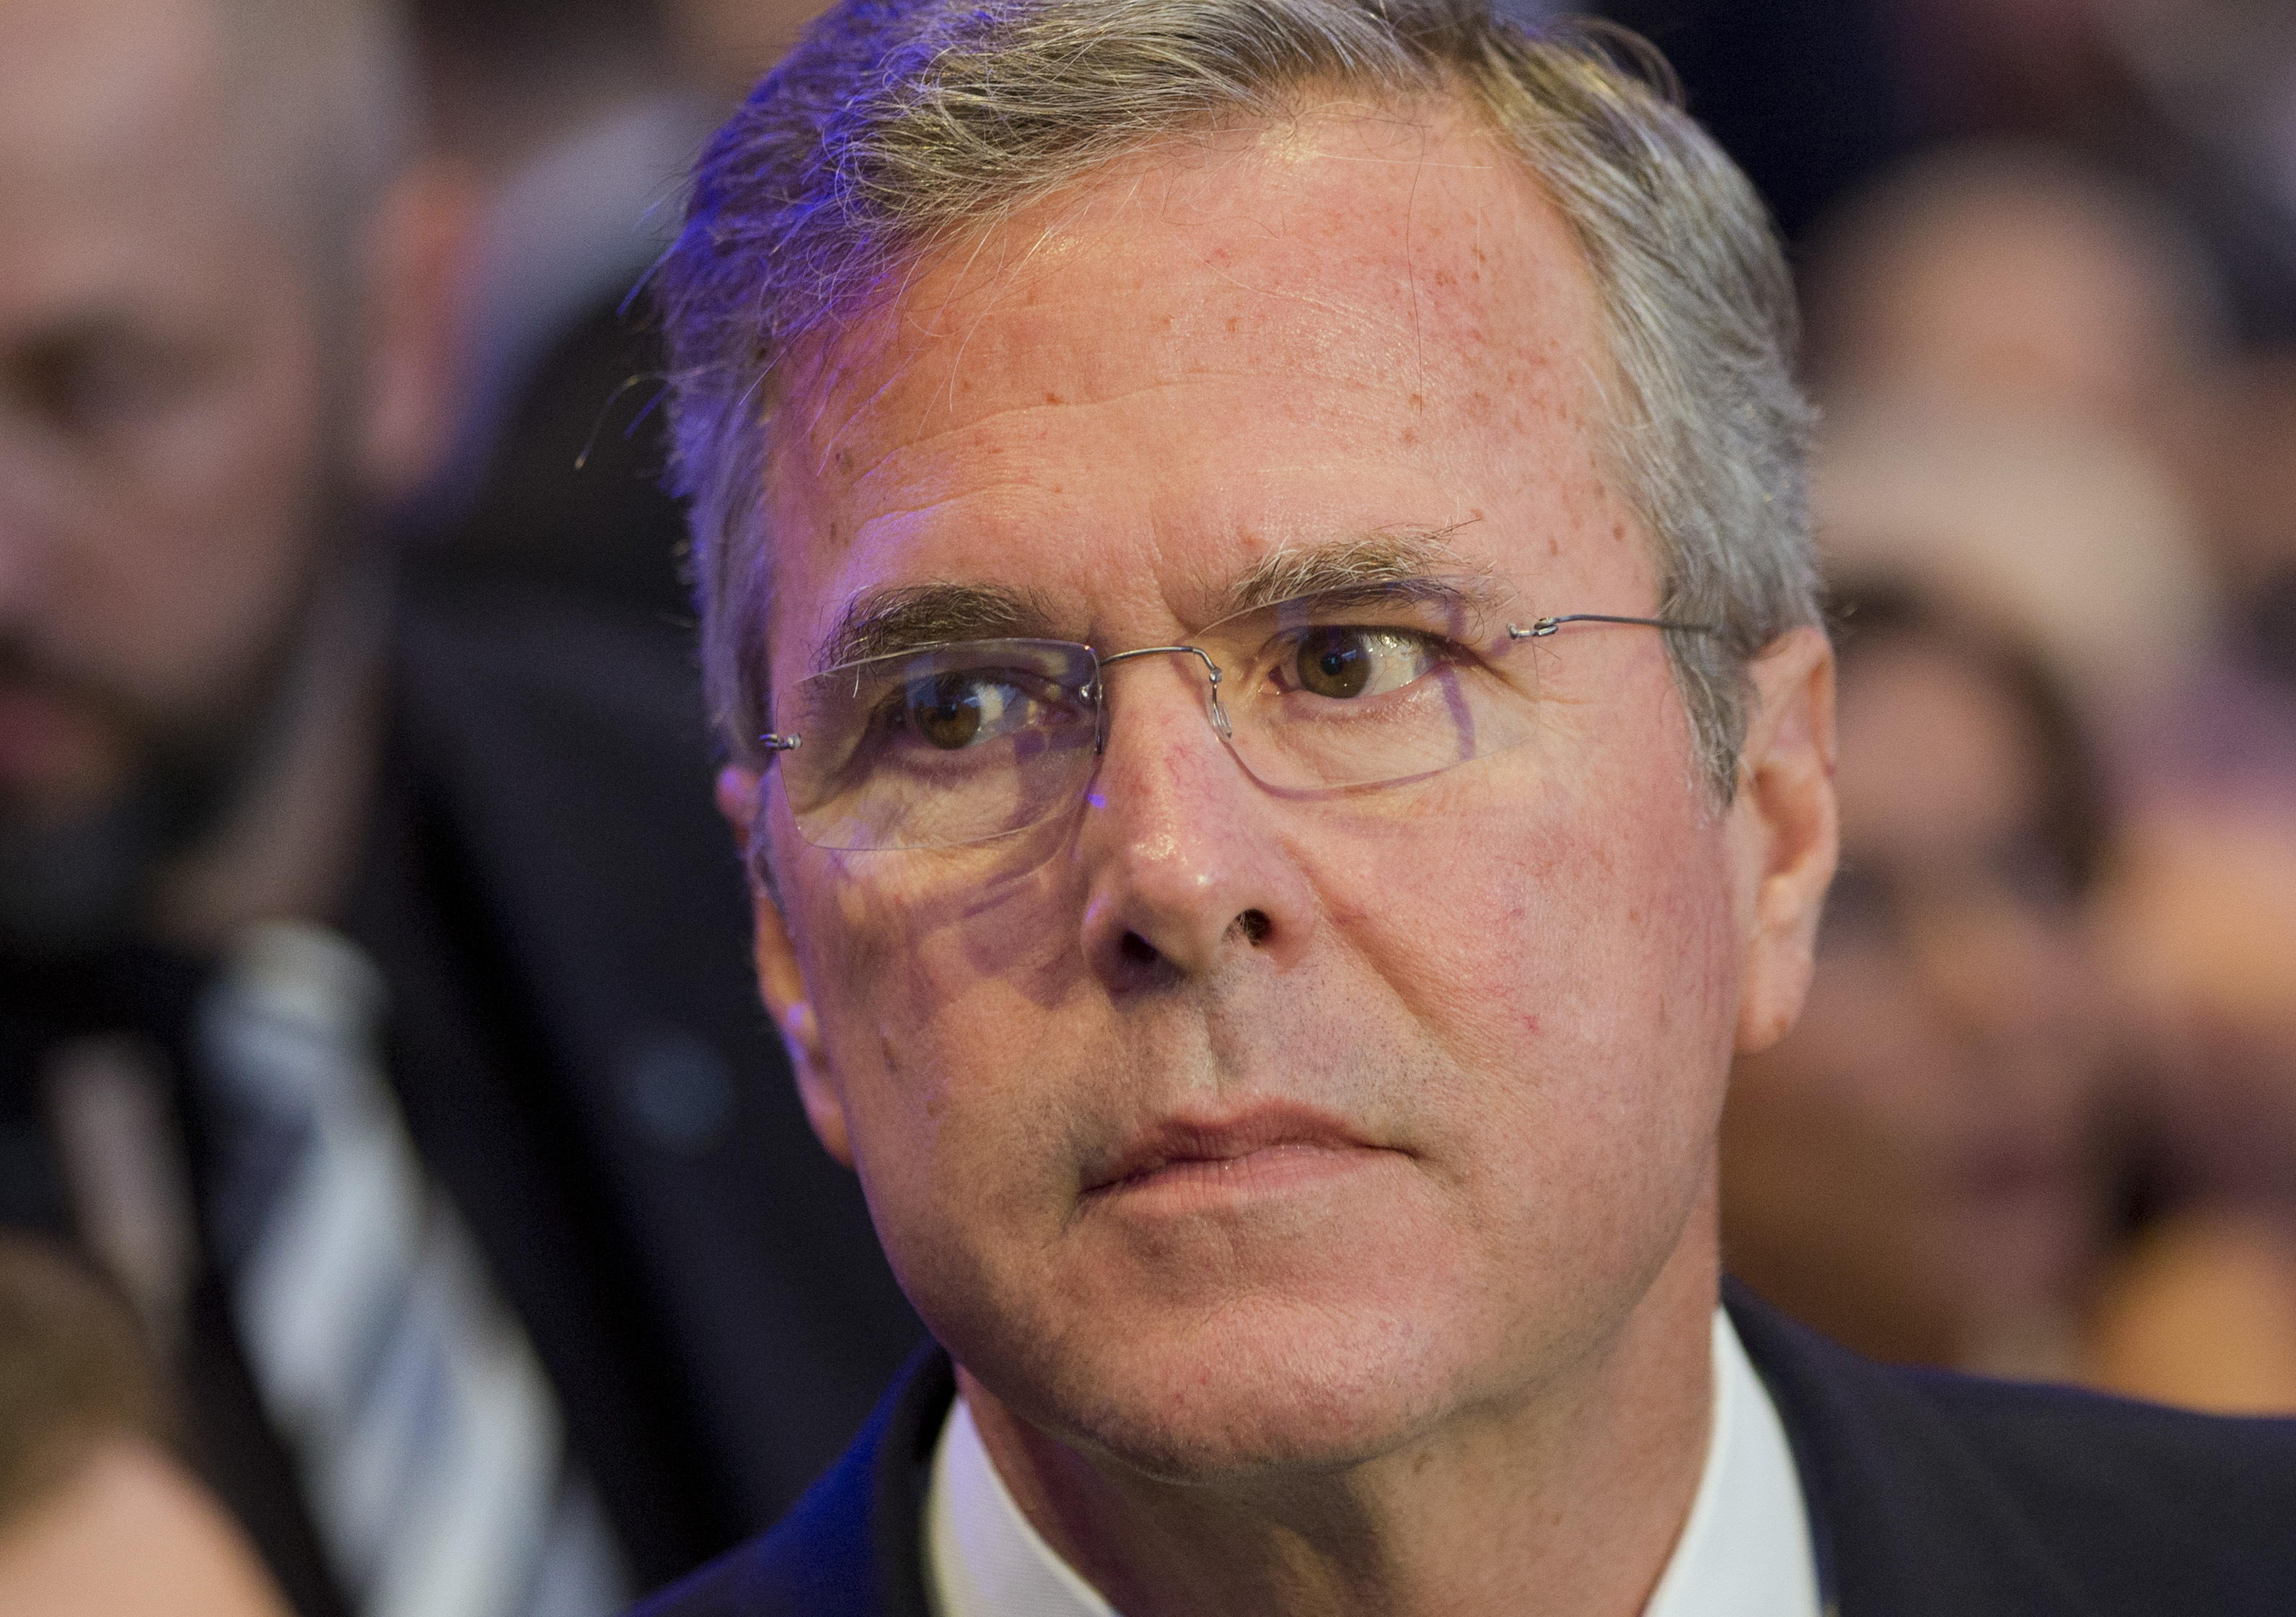 Former US Governor Jeb Bush arrives for the Economic Council in Berlin on June 9, 2015.